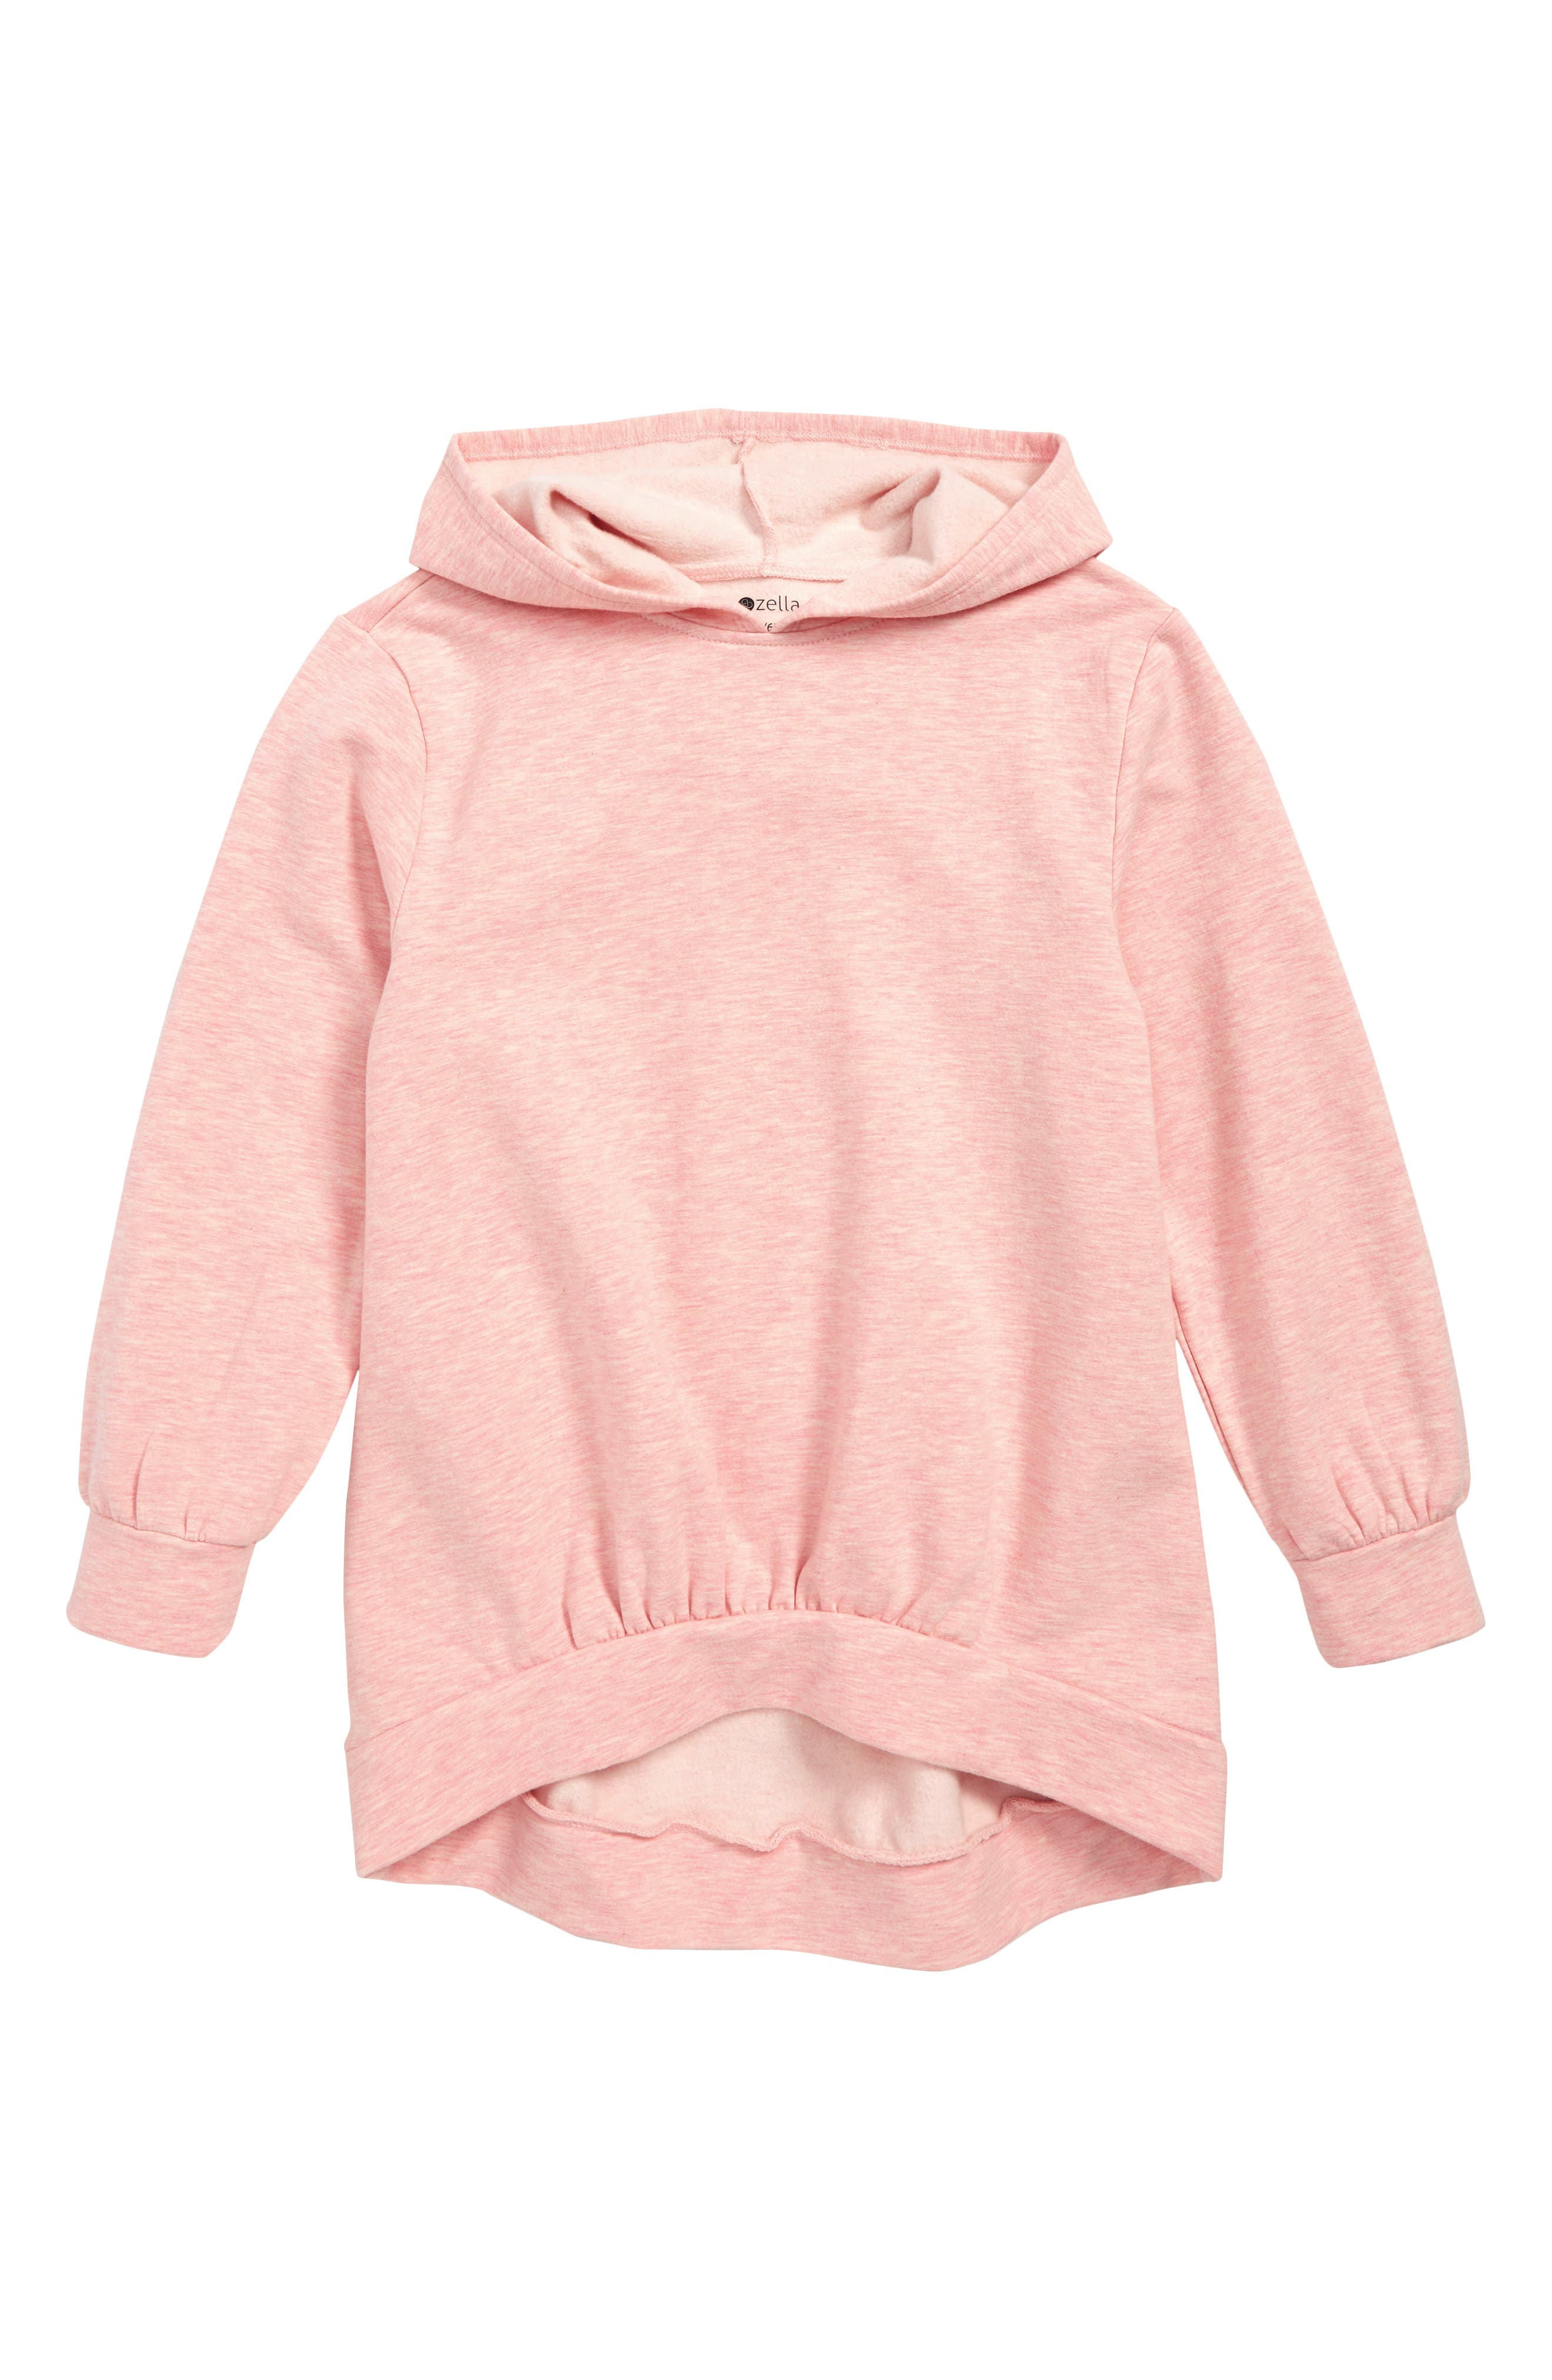 Gather Hem Hoodie,                             Main thumbnail 1, color,                             PINK CREPE HEATHER